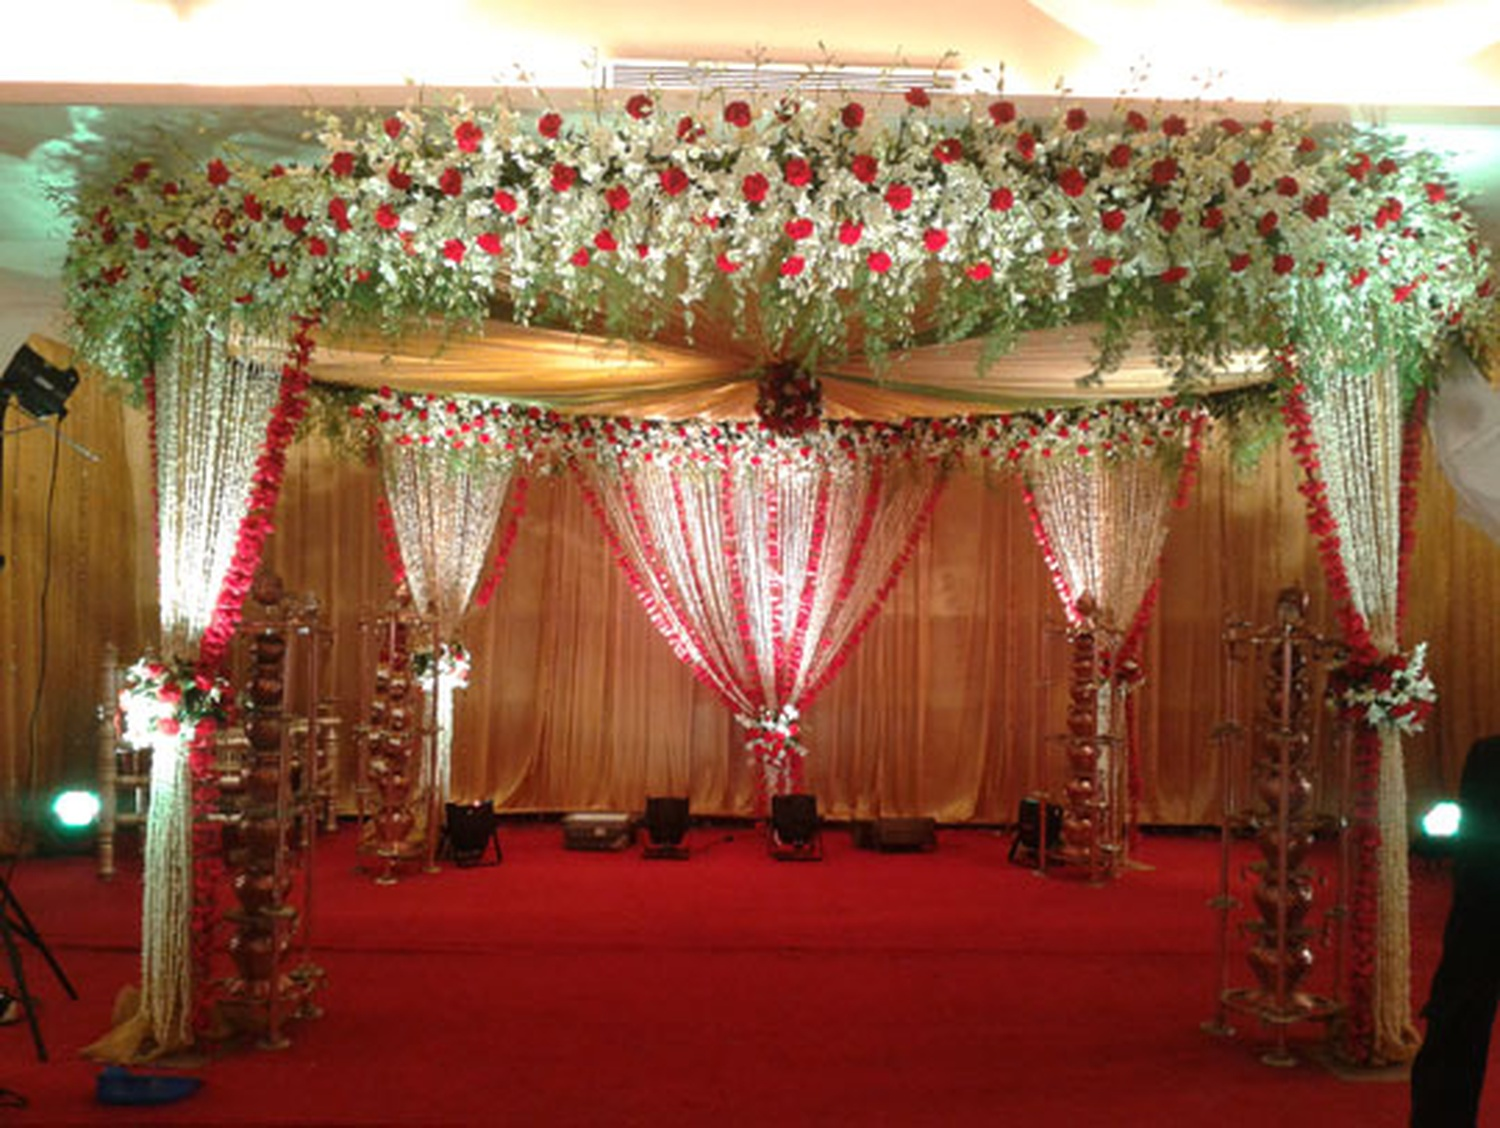 Trupti catering and decor wedding decorator in mumbai weddingz overview junglespirit Image collections